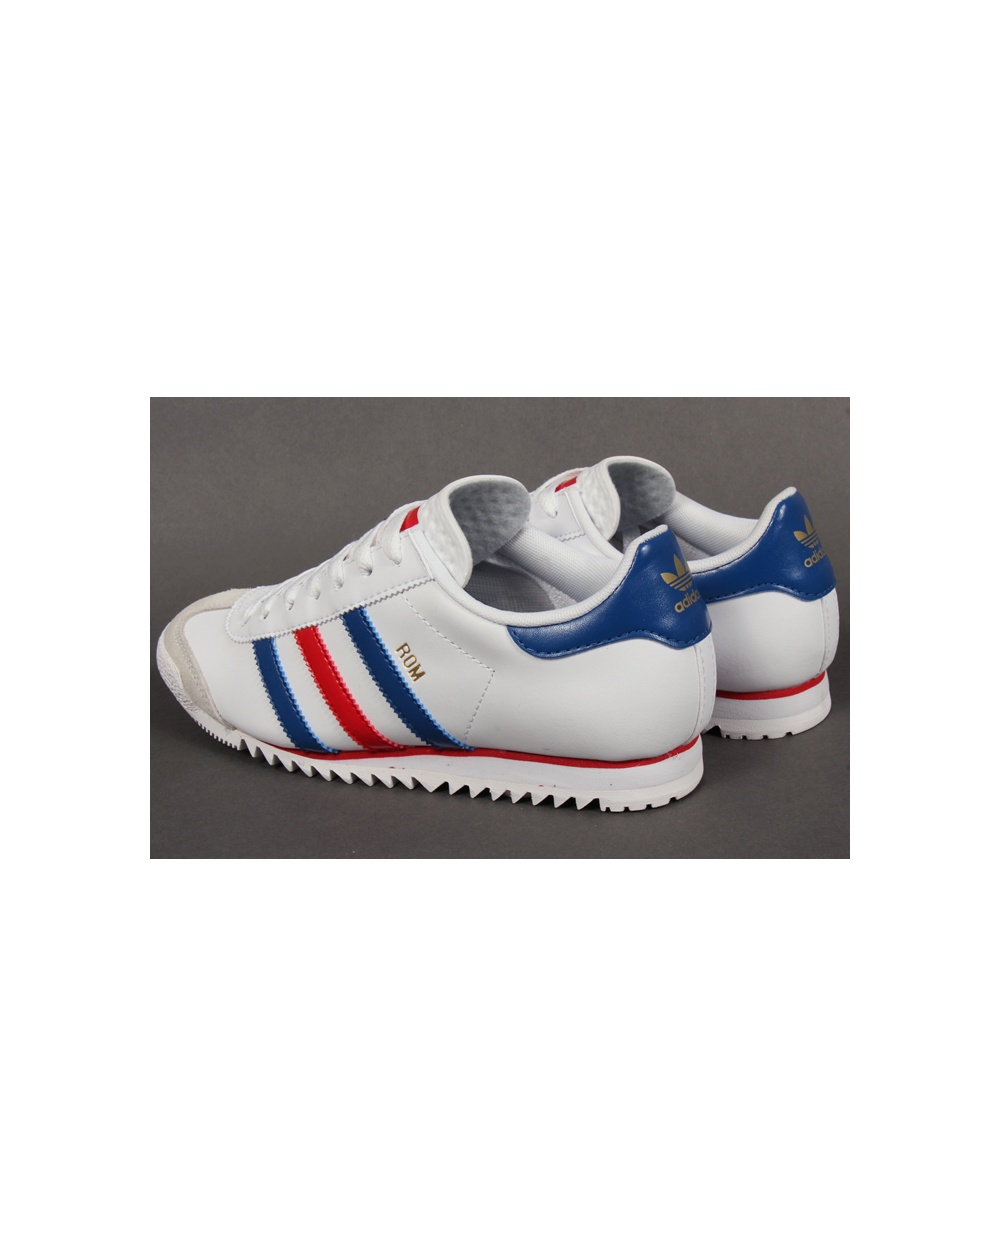 Adidas Rom Trainers White/red/blue